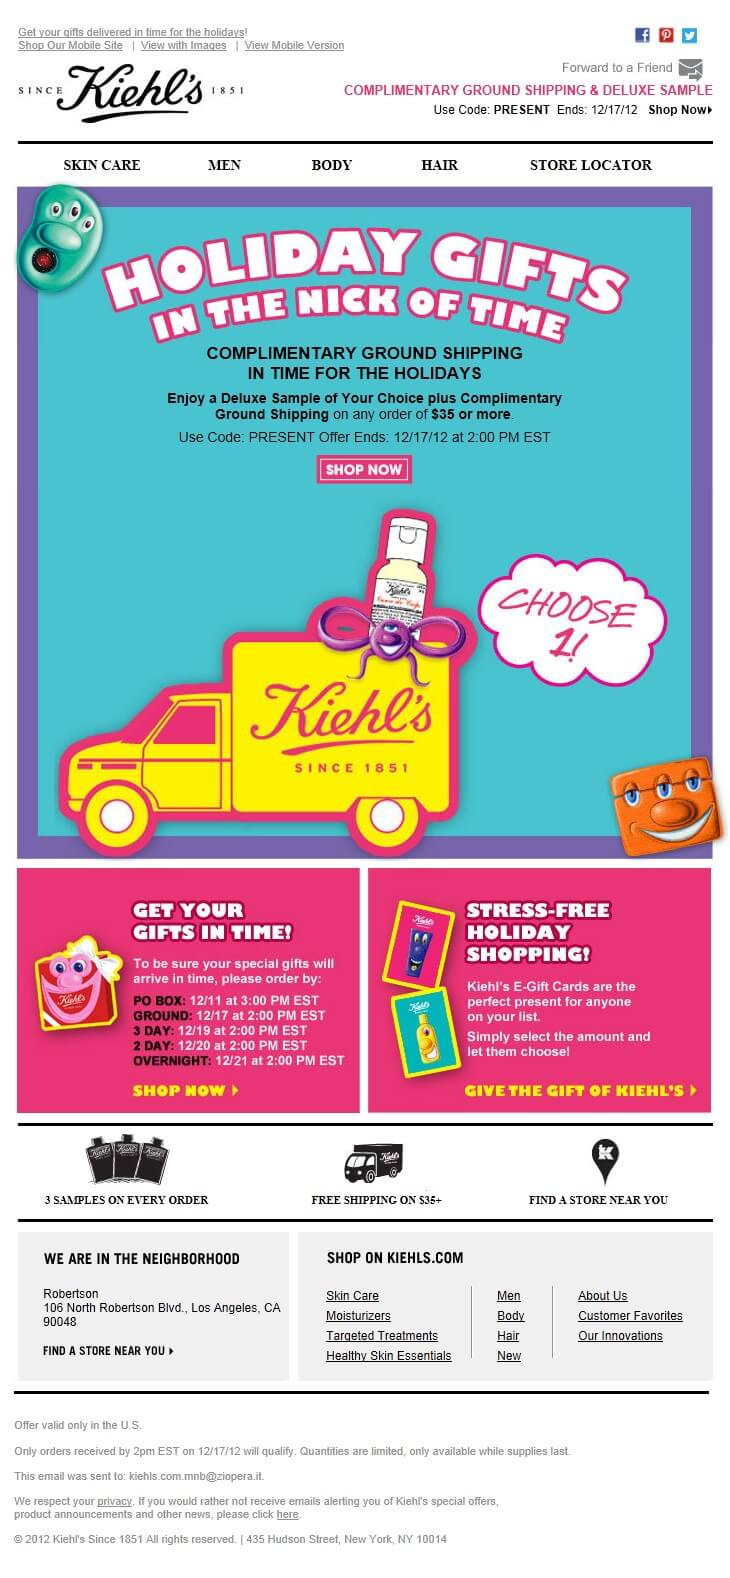 fashion emails- Kiehl's